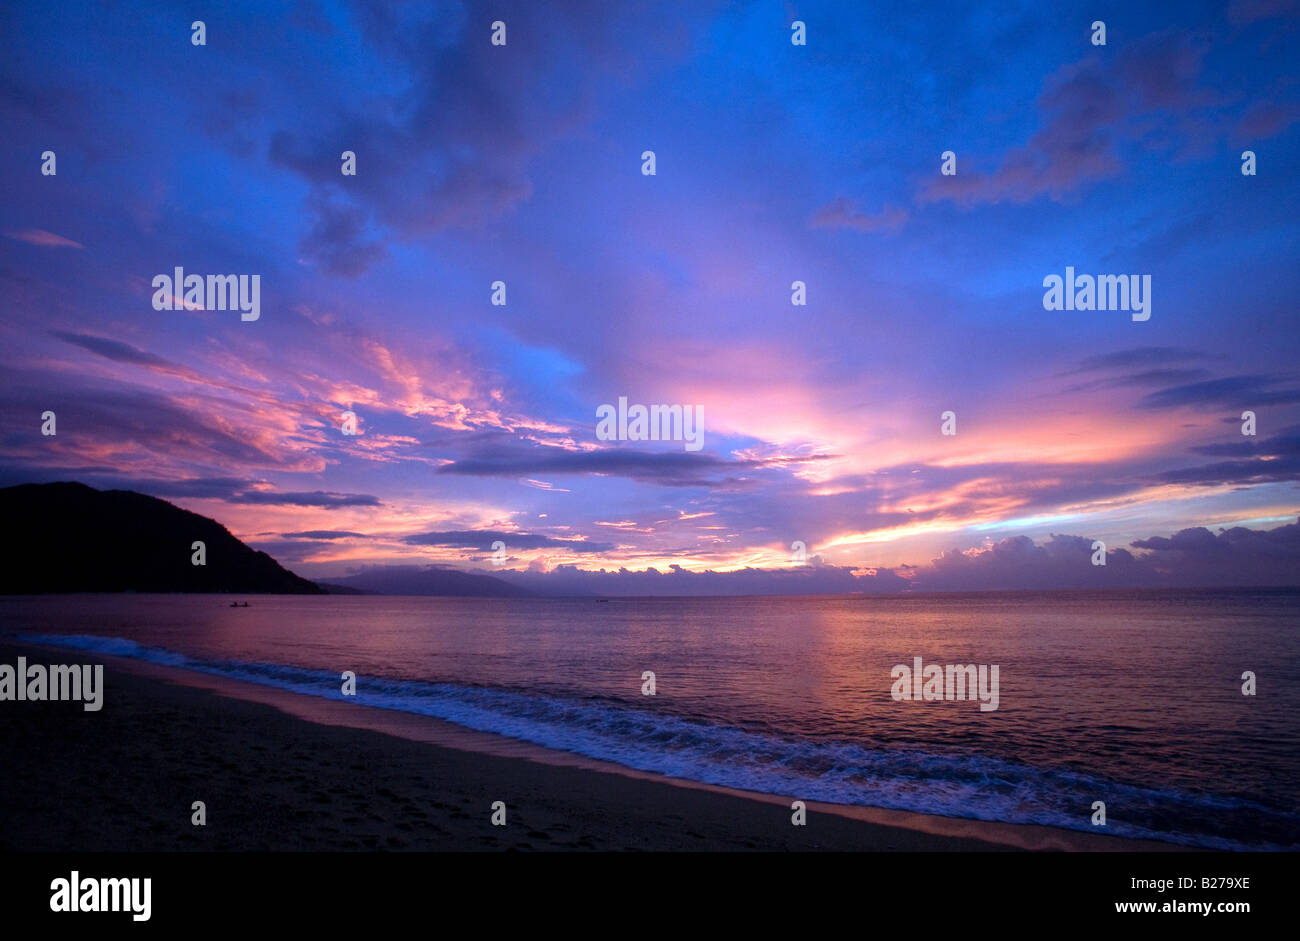 The sun sets on White Beach near Puerto Galera, Oriental Mindoro, Philippines. - Stock Image